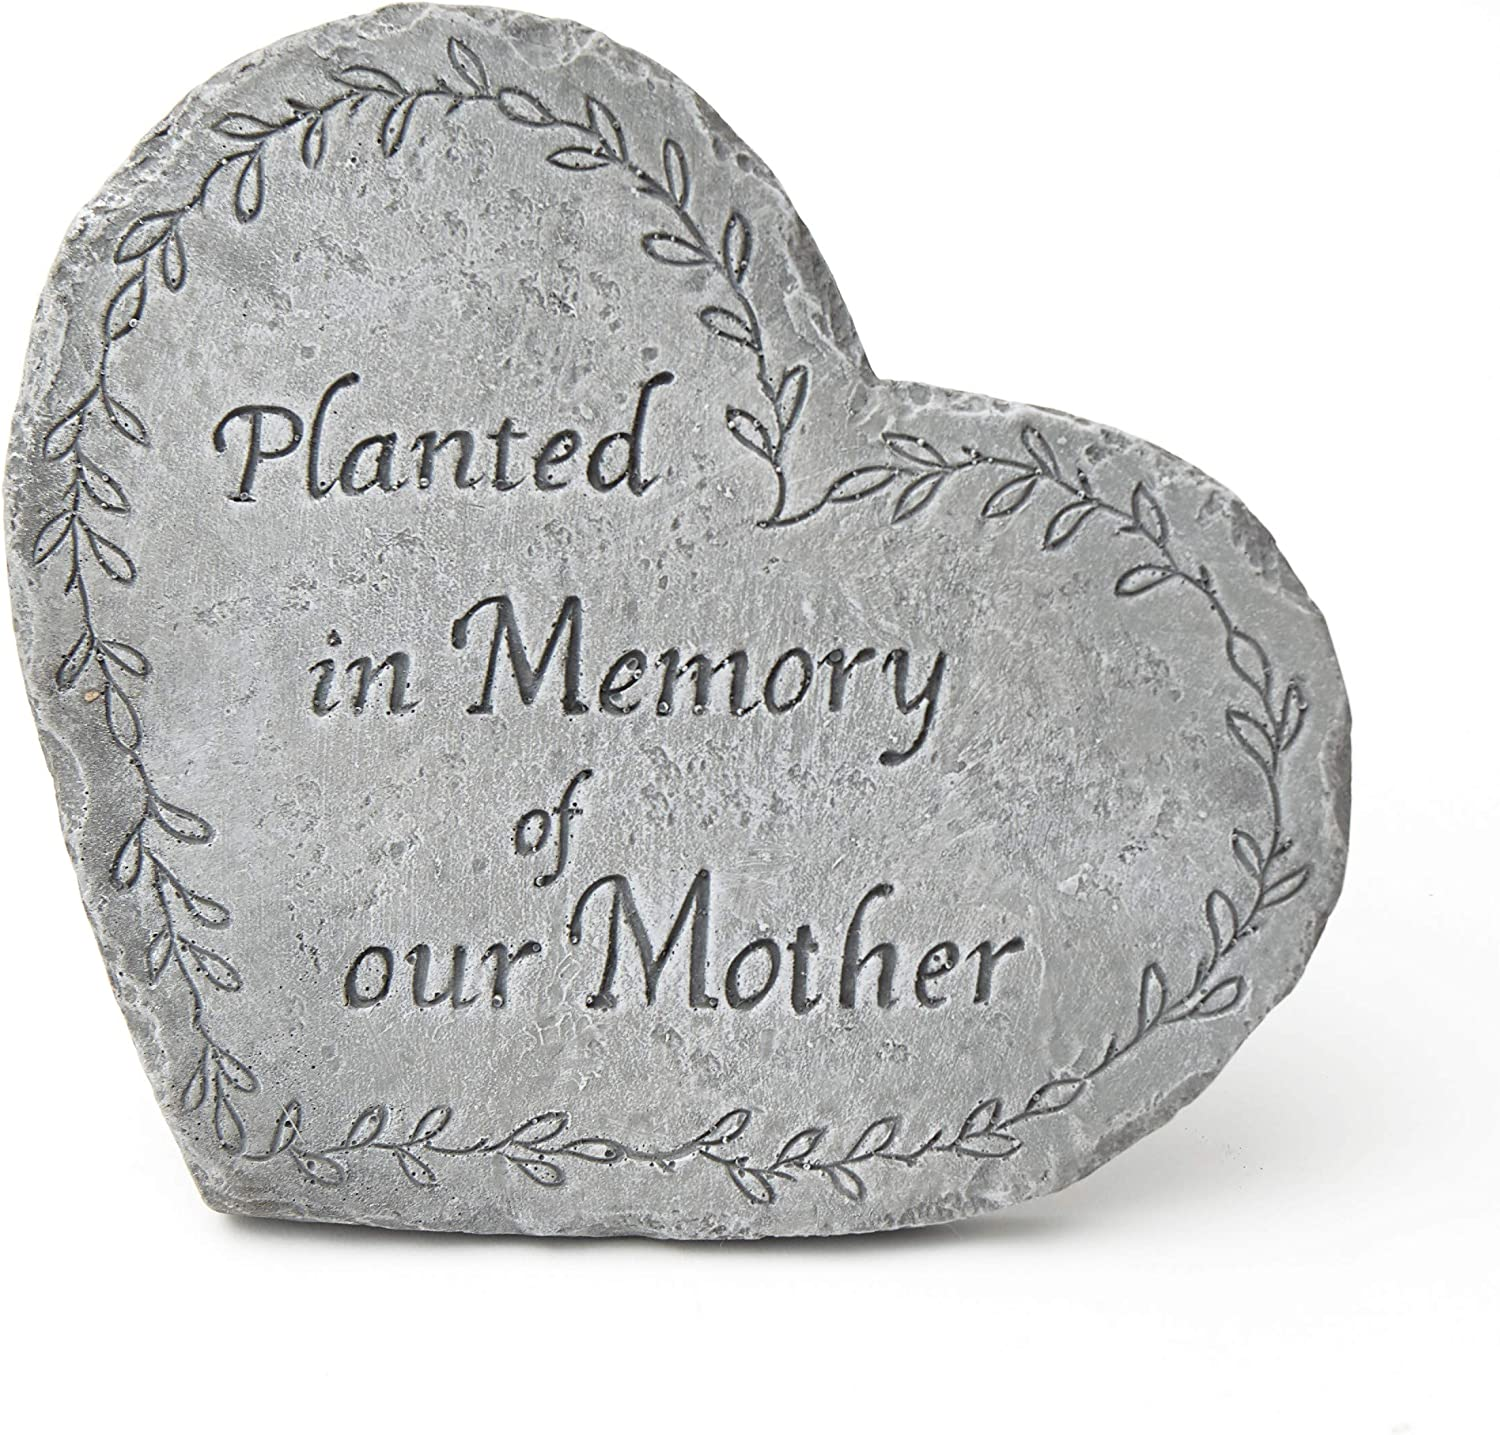 The Lakeside Collection Decorative Heart Shaped Garden Memorial Stone with Sentiment - Mother